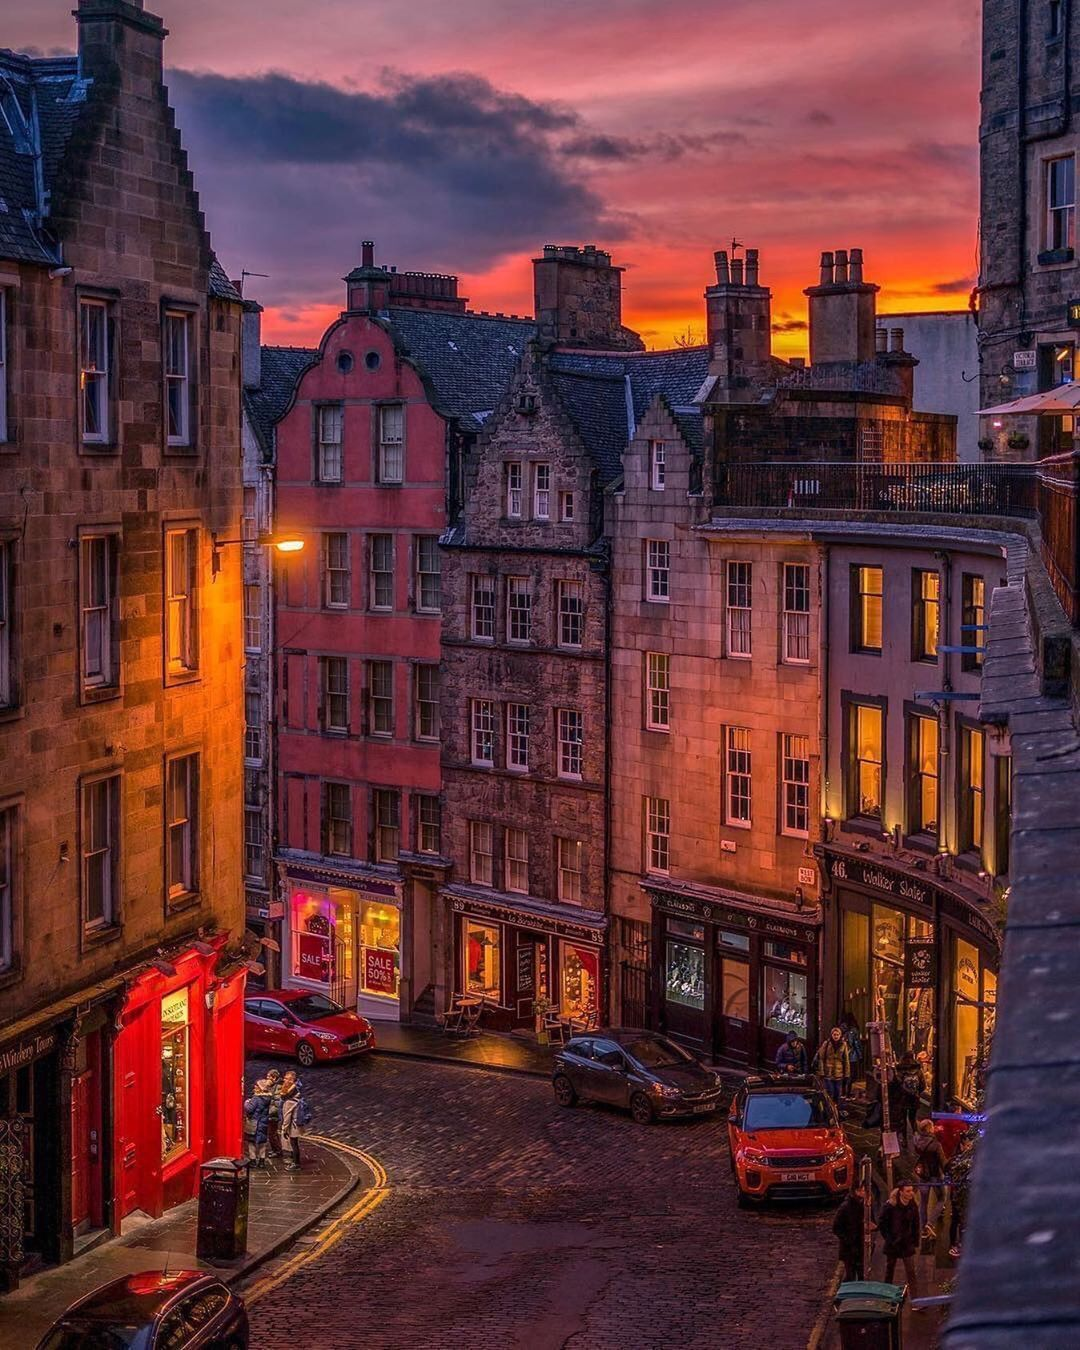 "Simple is Beautiful on Instagram: ""Photo by Ravikant Rahul Pandey, Victoria Street, Edinburg, Scotland #photography #photographer #photooftheday #picoftheday…"""